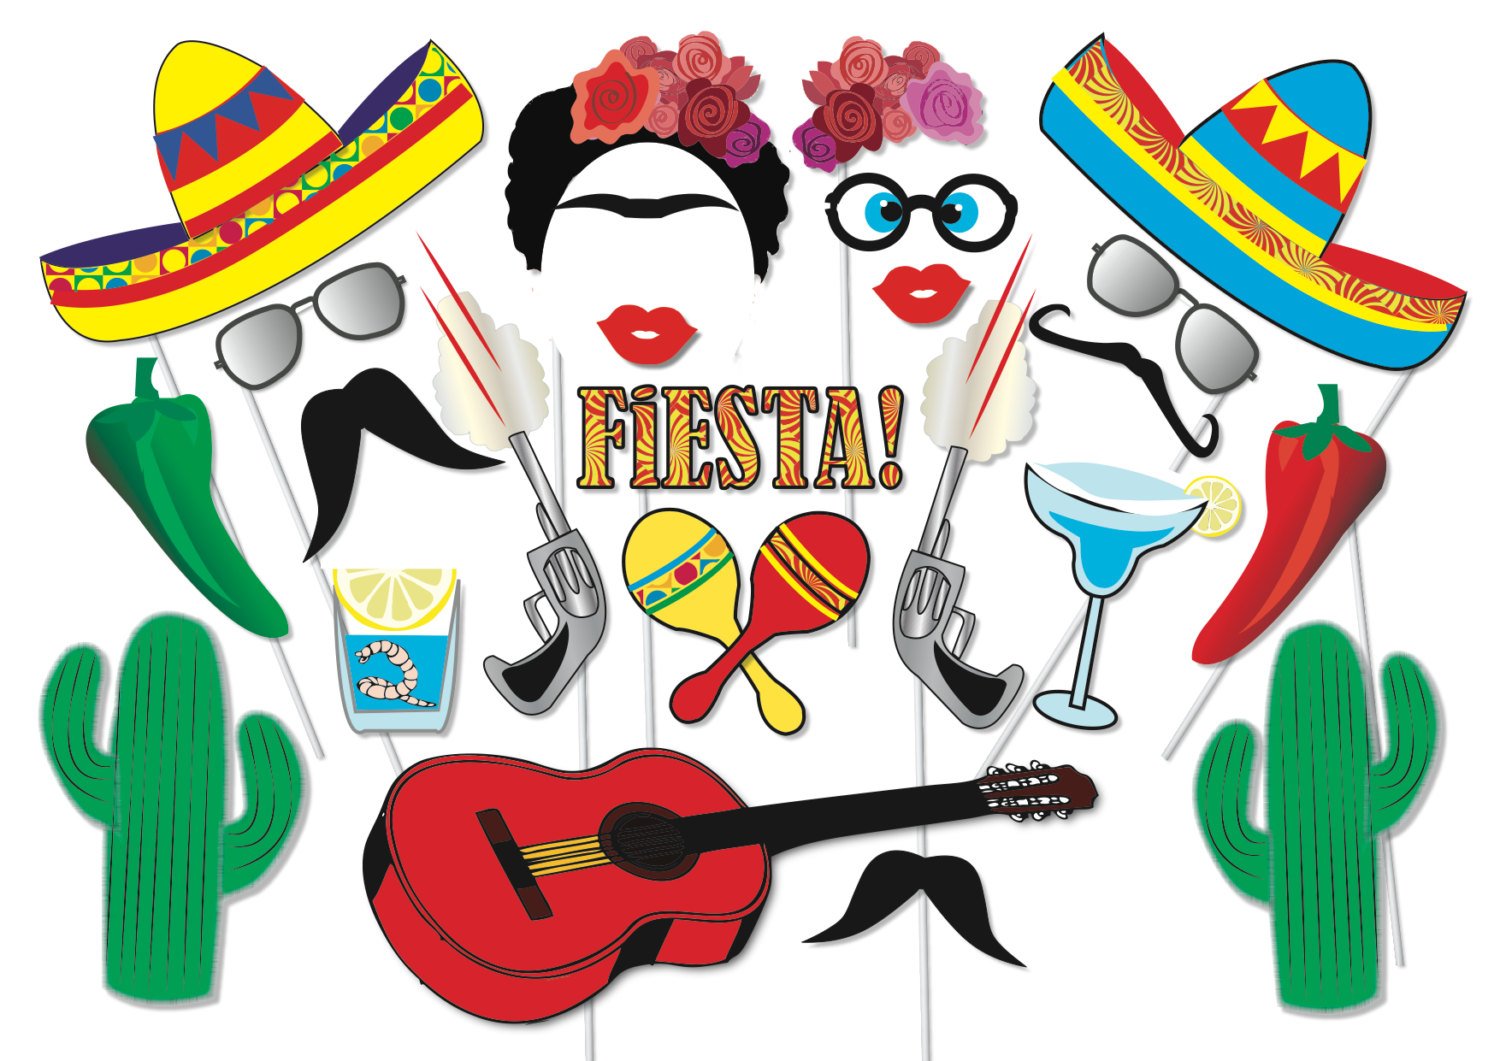 Fiesta clipart fiesta mexicana. Enamour mexican party table